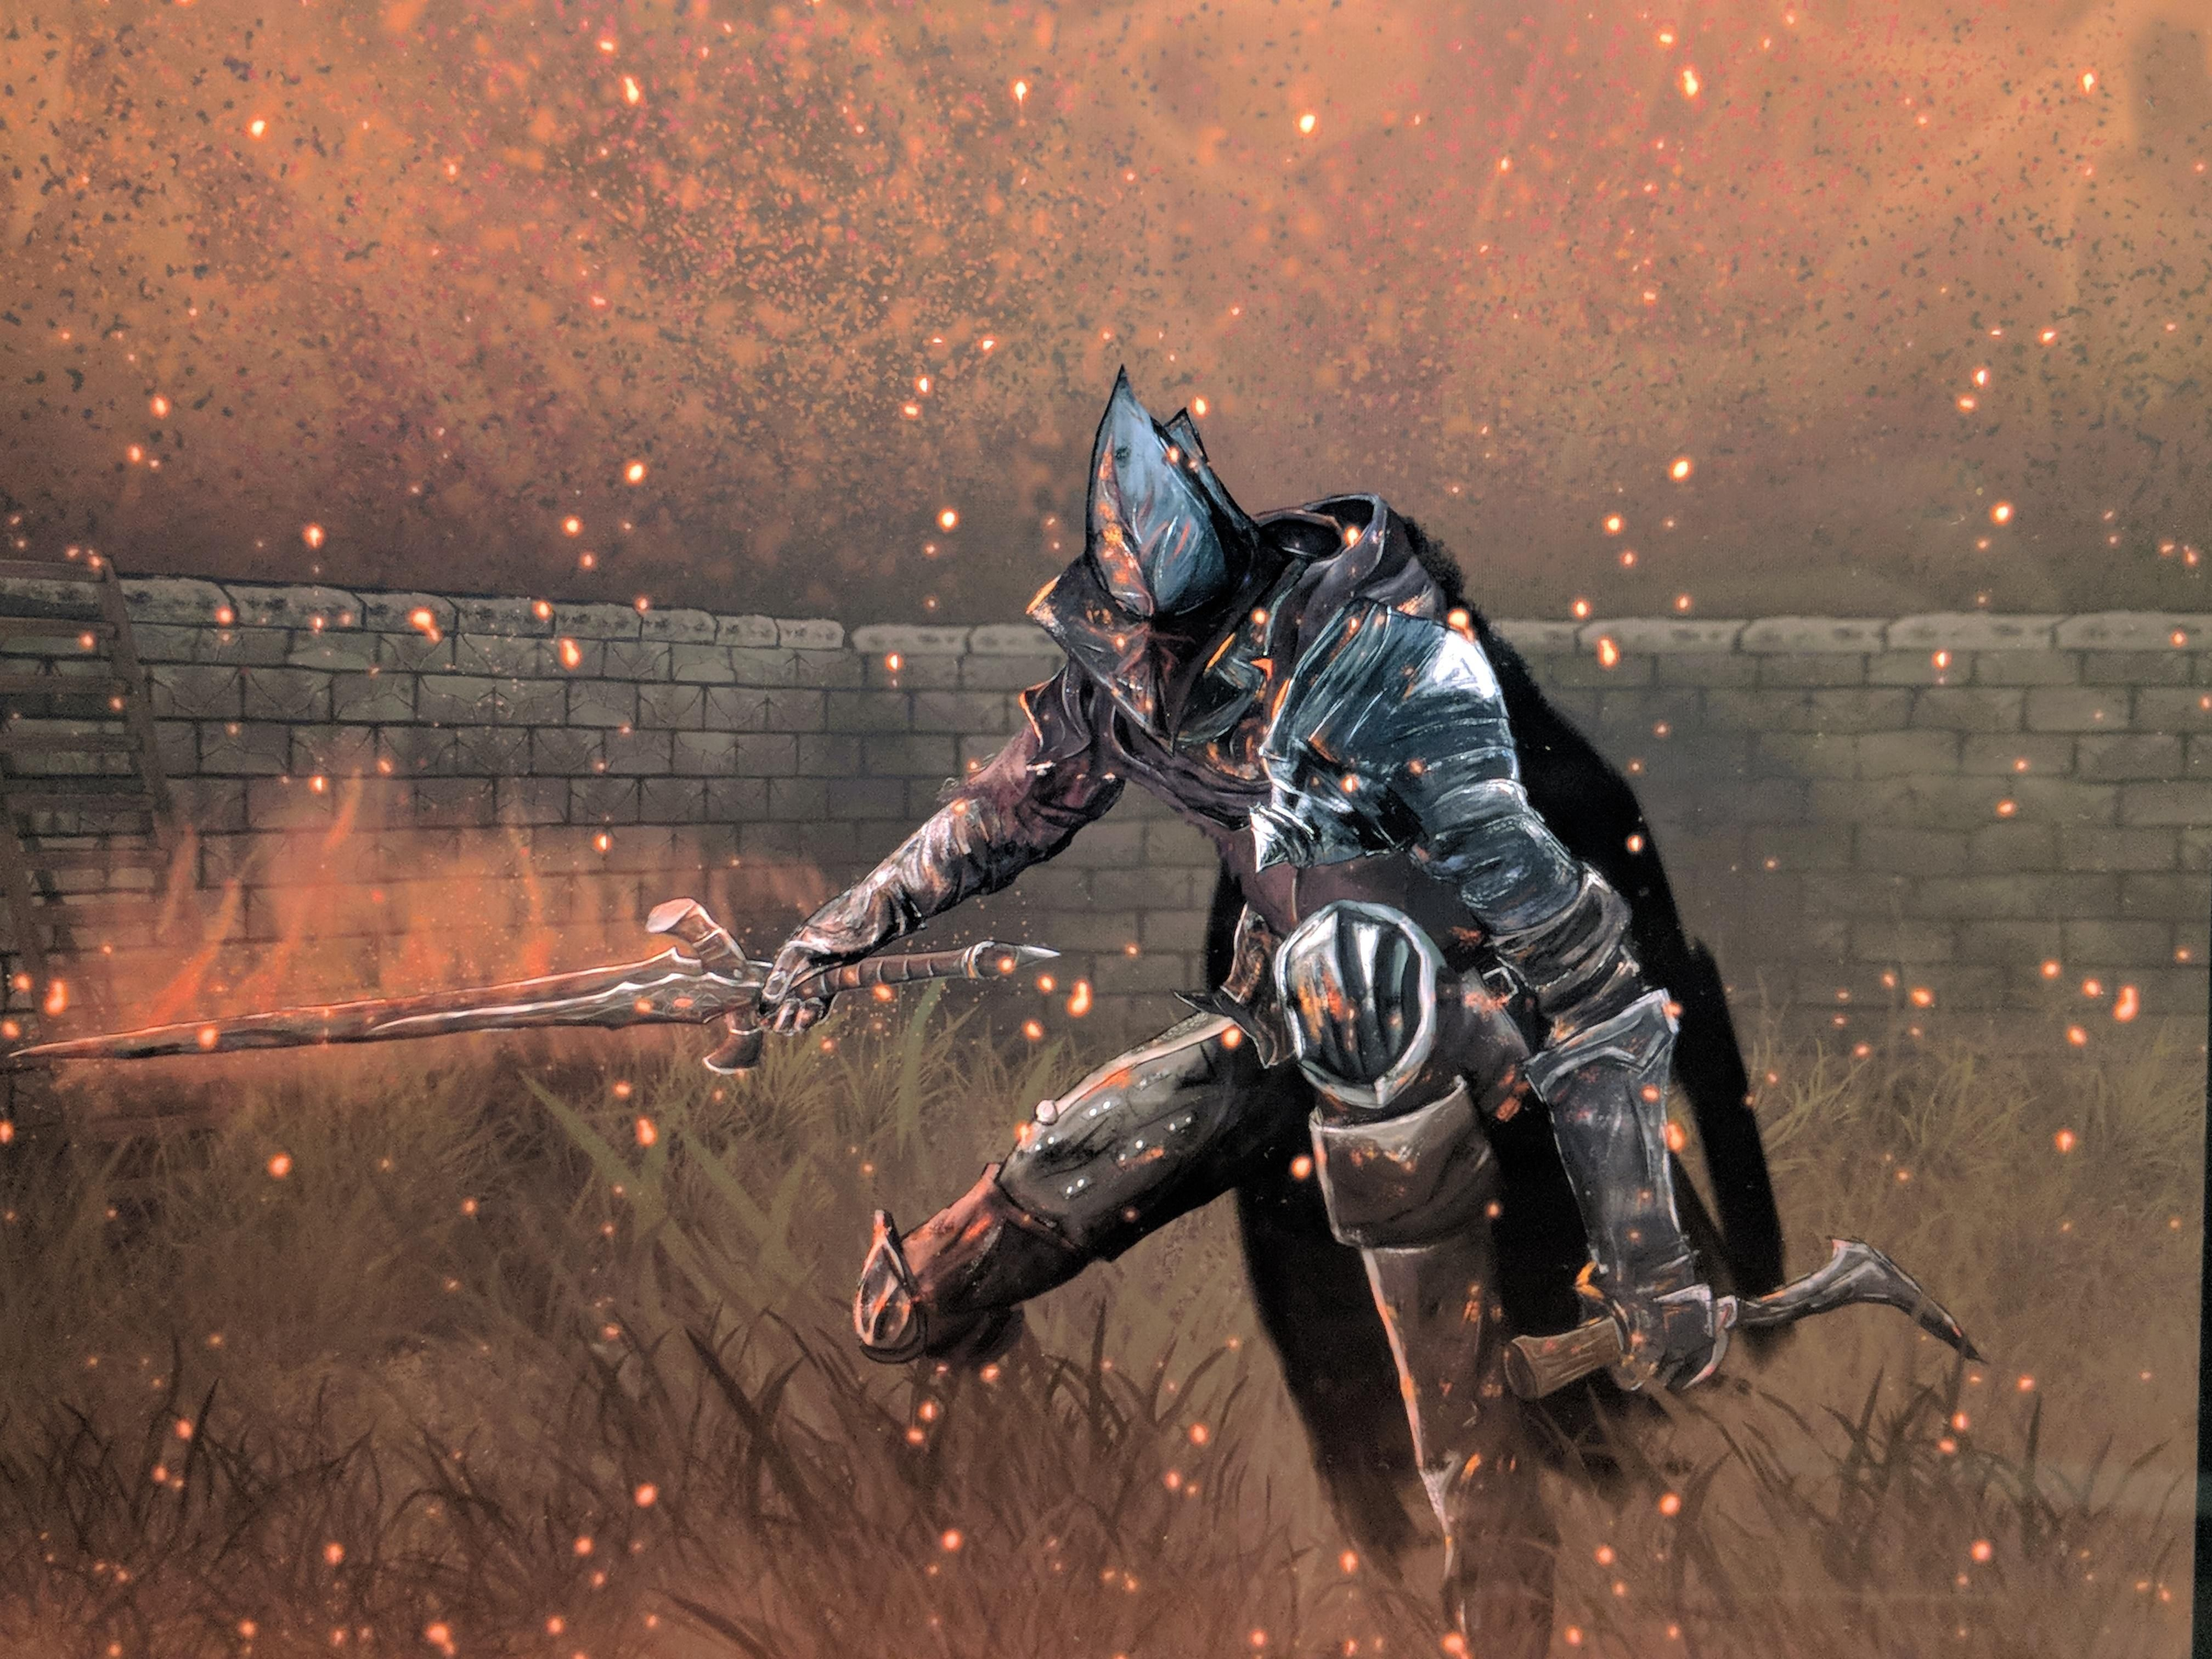 I Painted An Abyss Watcher From Dark Souls 3 Using Photoshop Dark Souls Dark Souls 3 Dark Souls Art